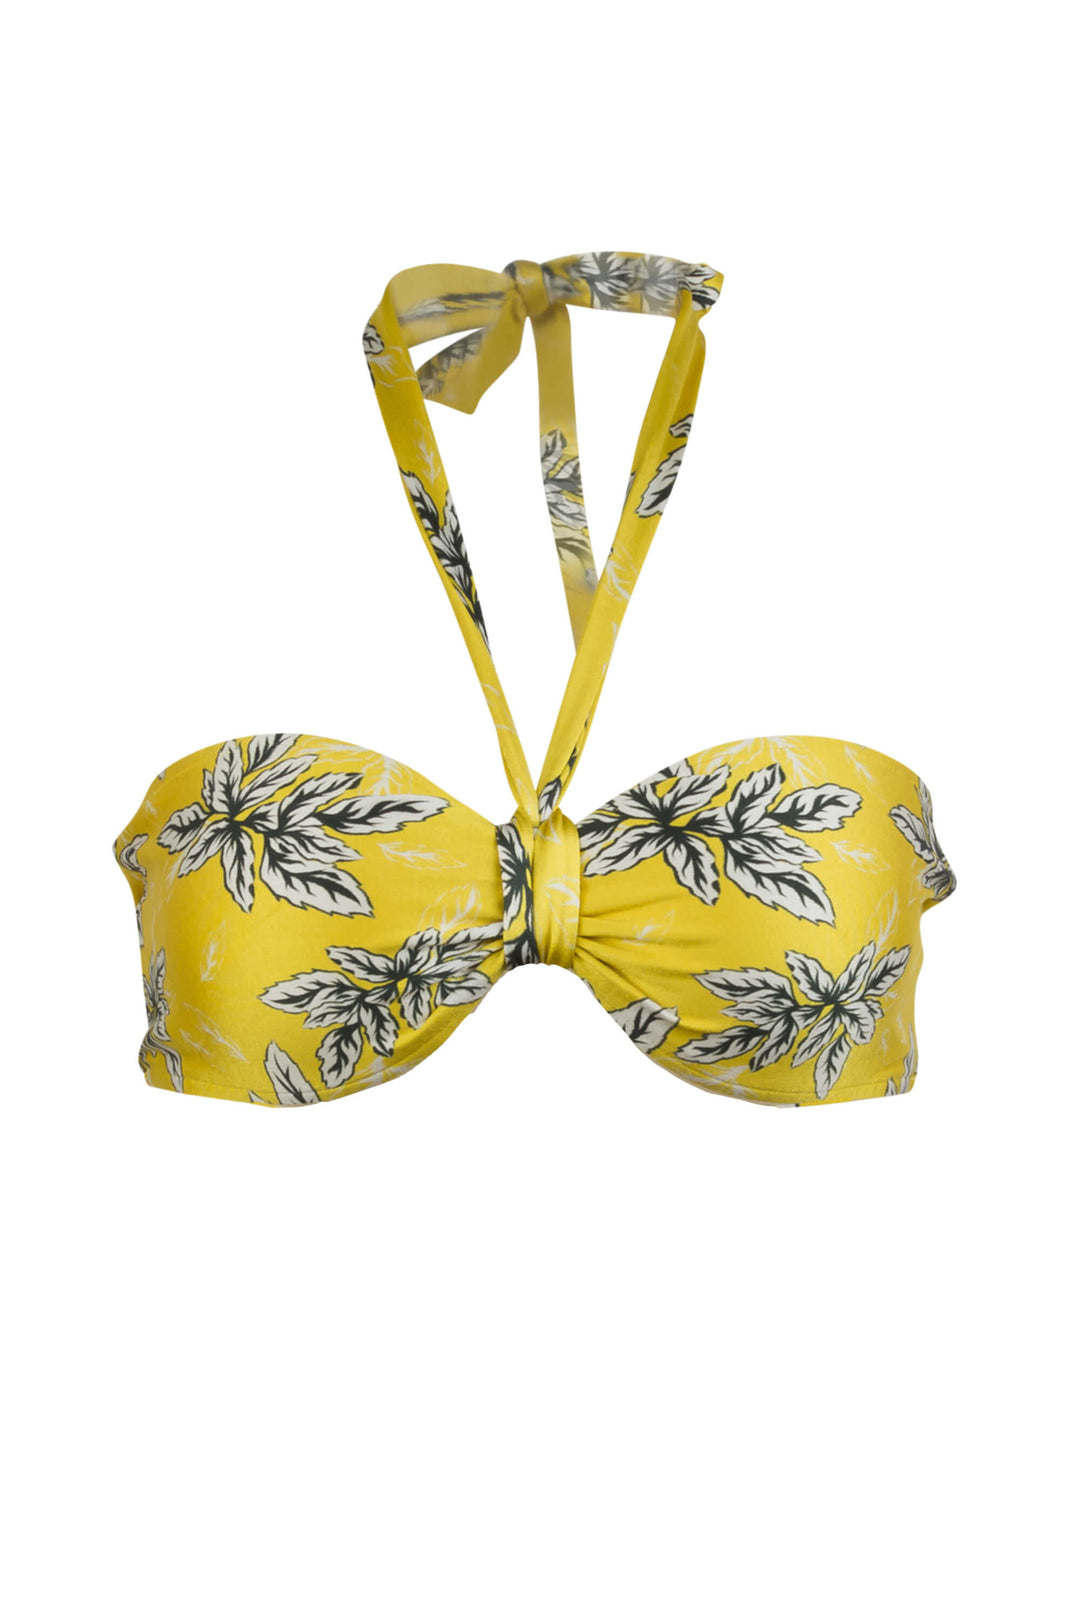 Bianca bikini top in Spring with strap